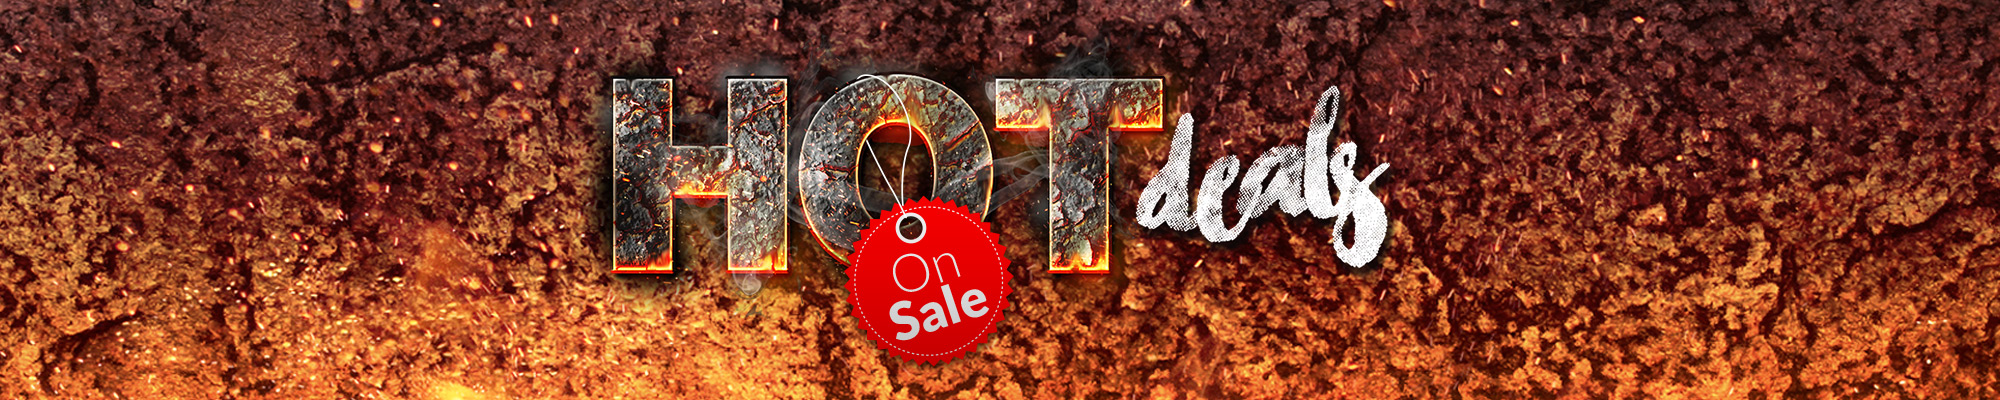 Hot Deals - On Sale